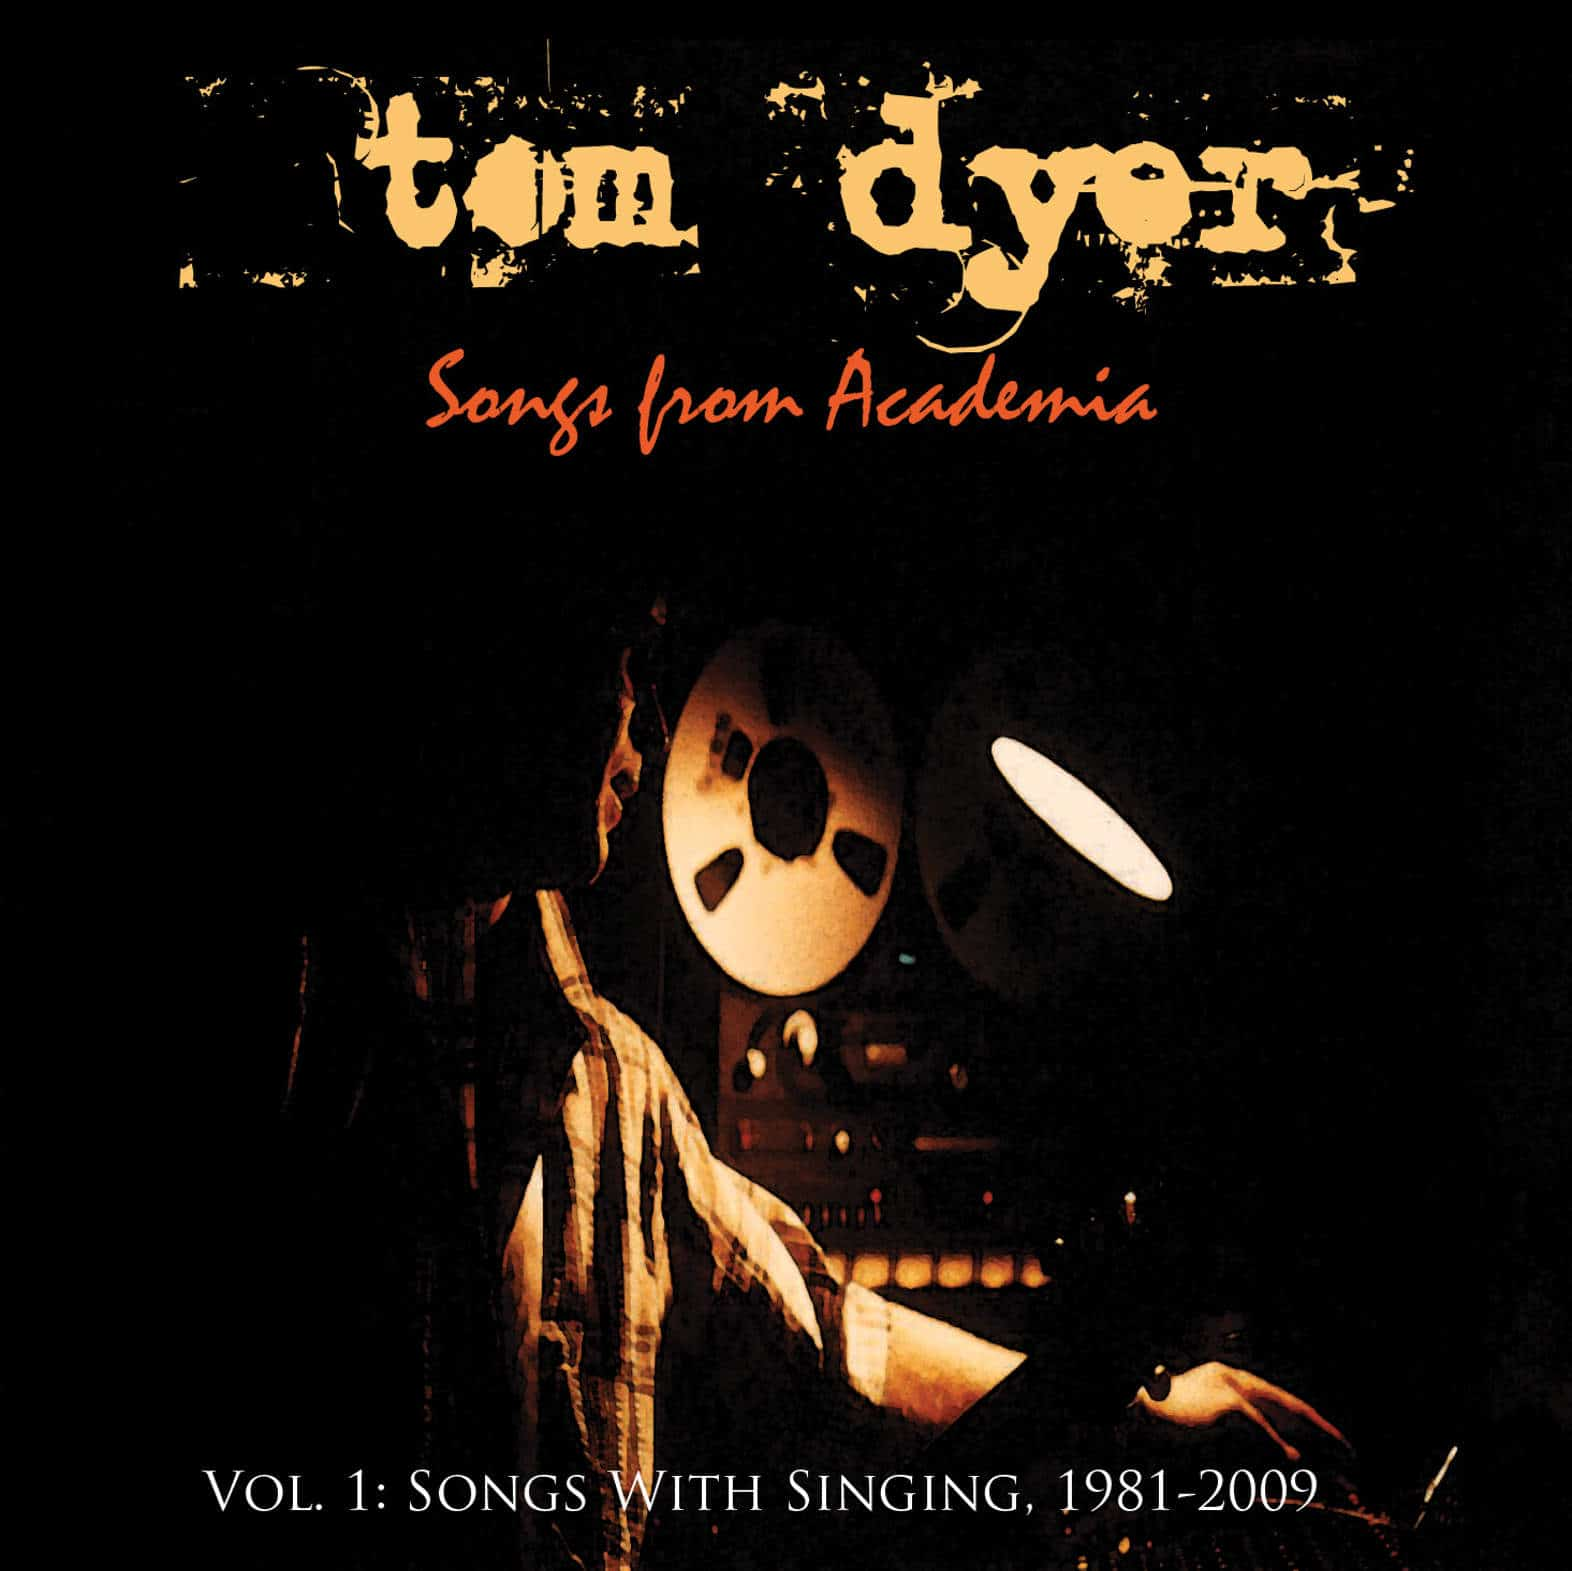 Tom Dyer - Songs From Academia Vol. 1